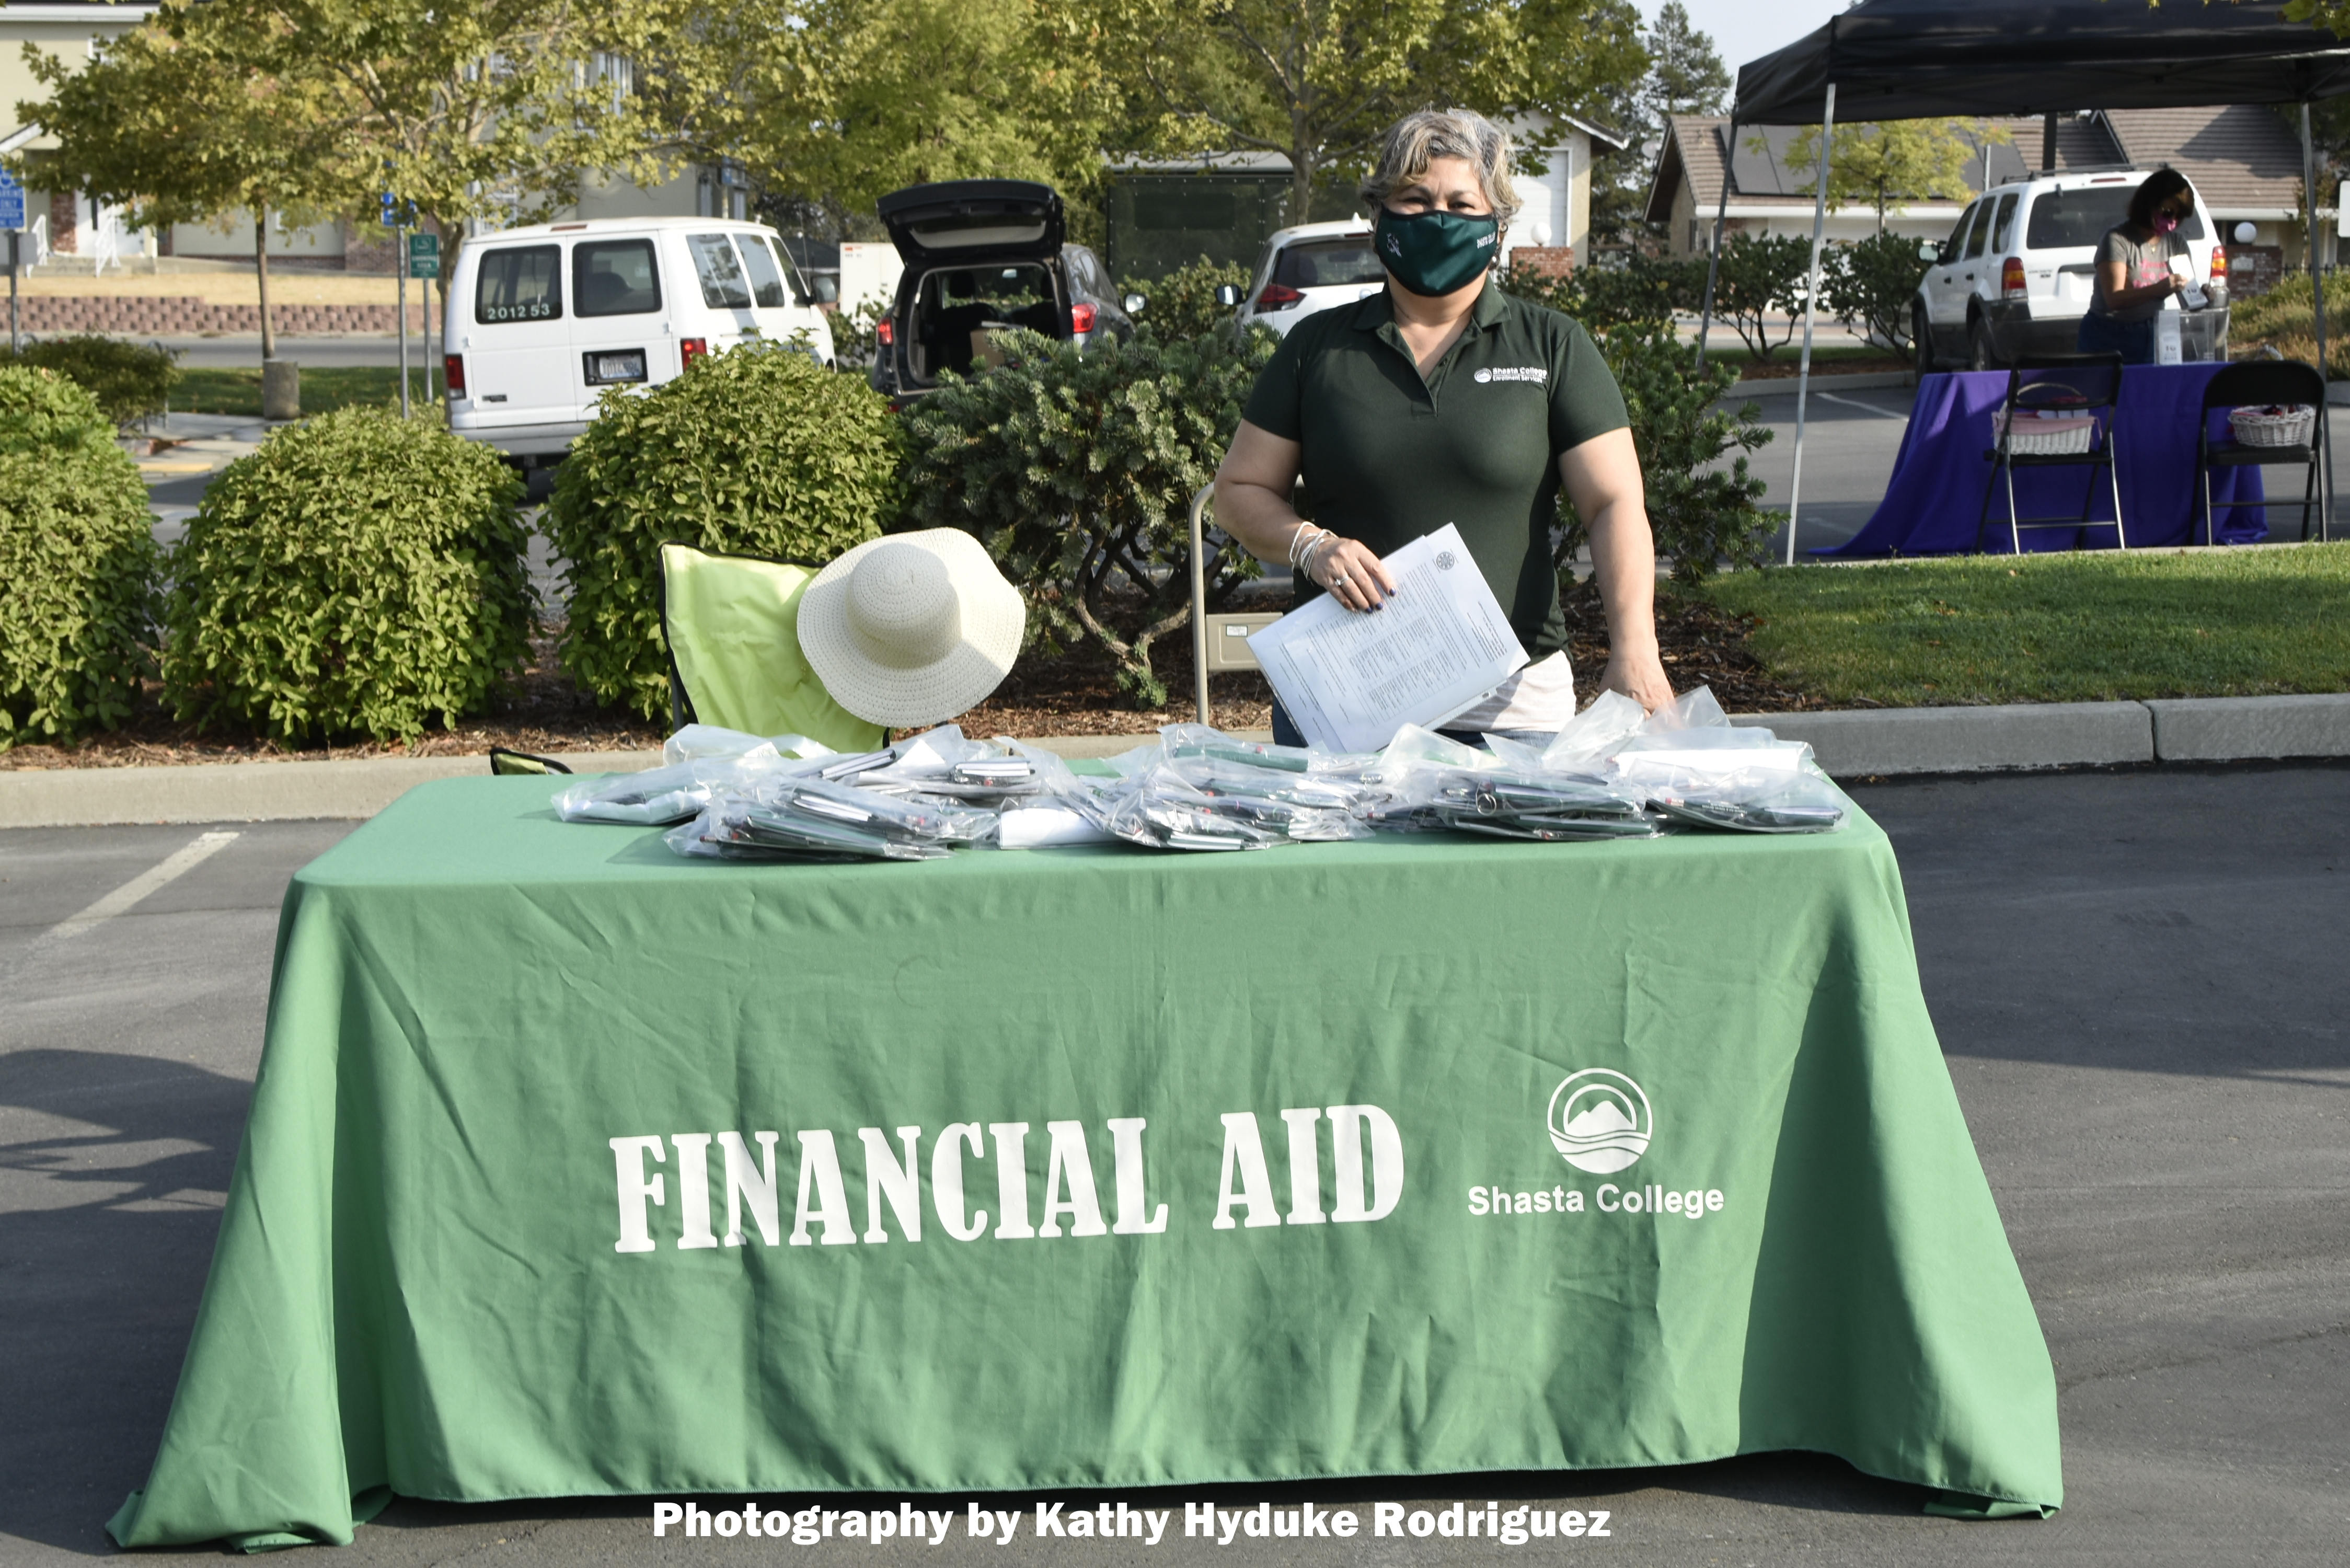 Go back to school with Shasta College